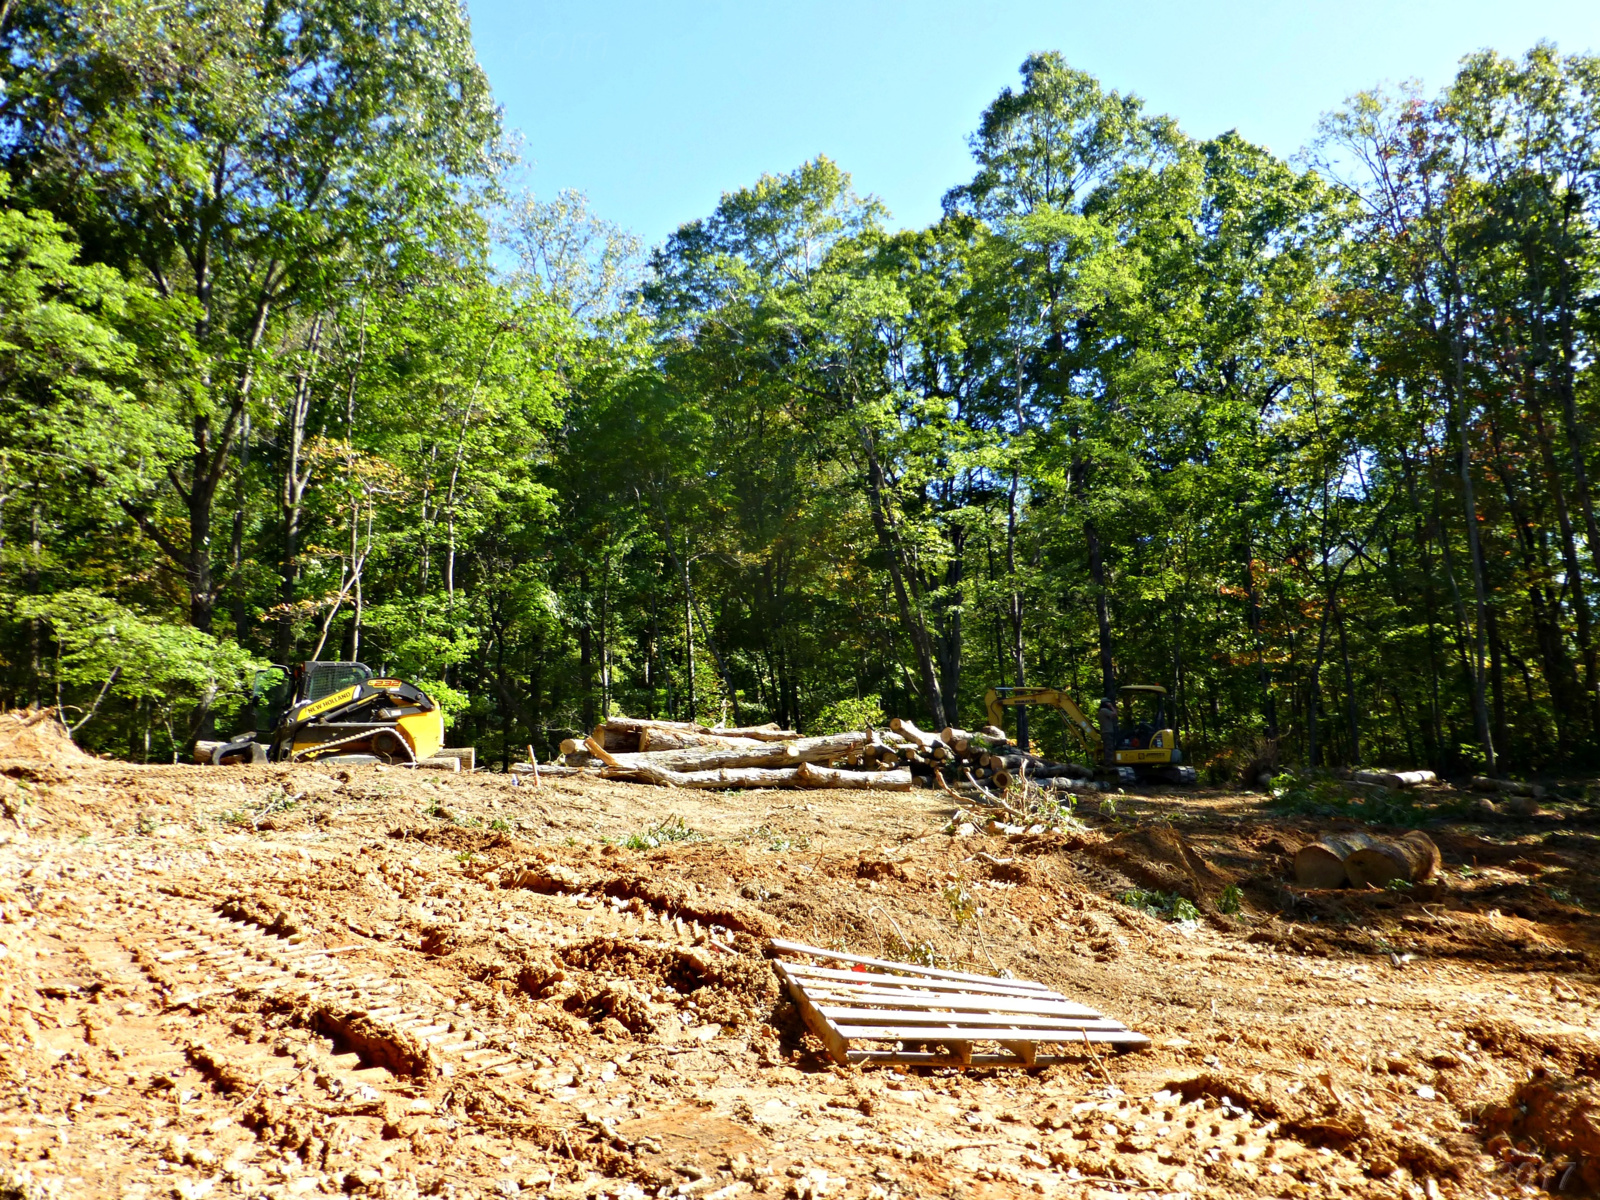 October 19, 2017 - Clearing land in Bent Tree